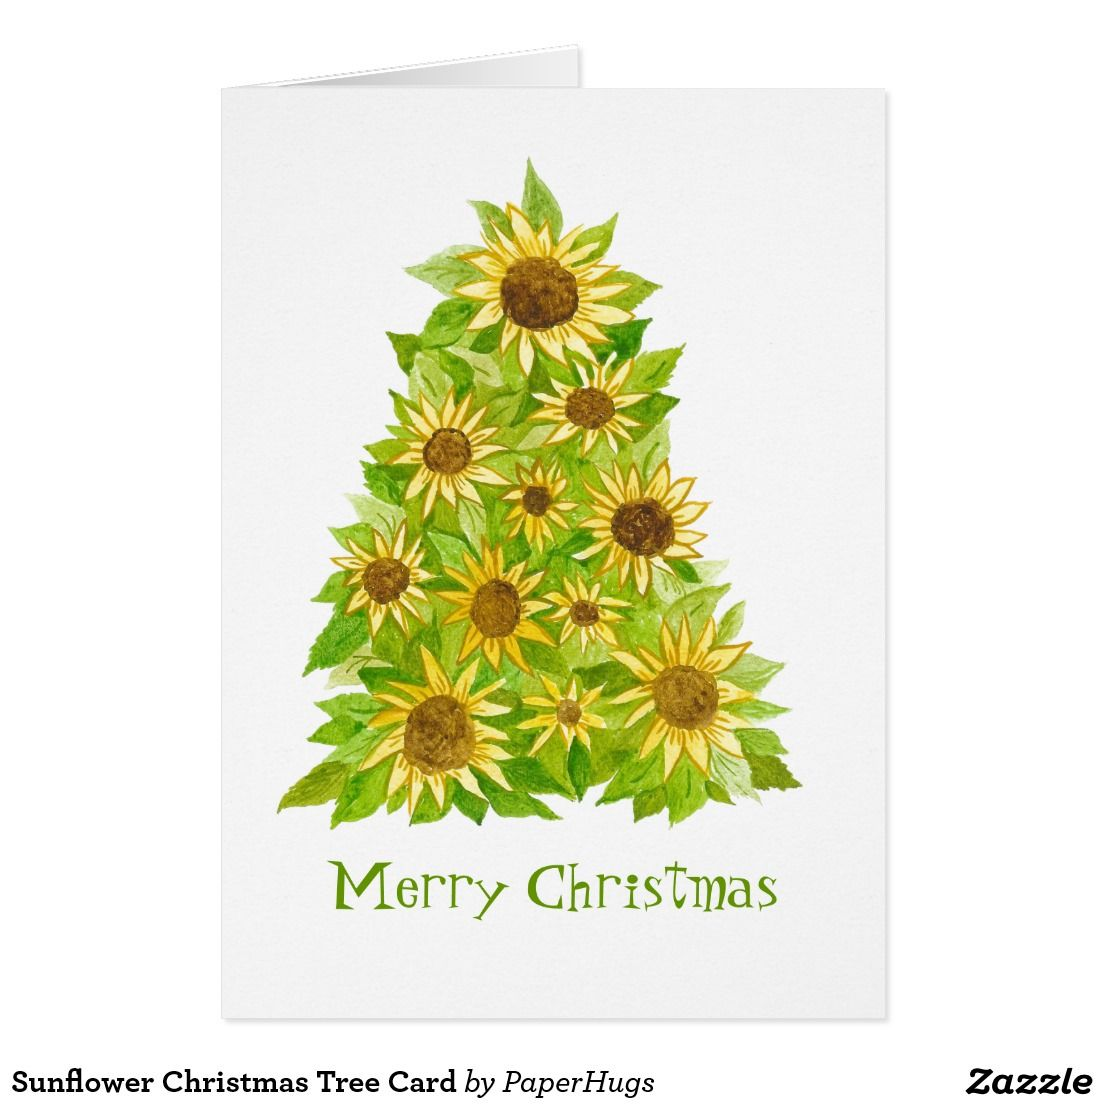 Create your own Card | Zazzle.com #sunflowerchristmastree